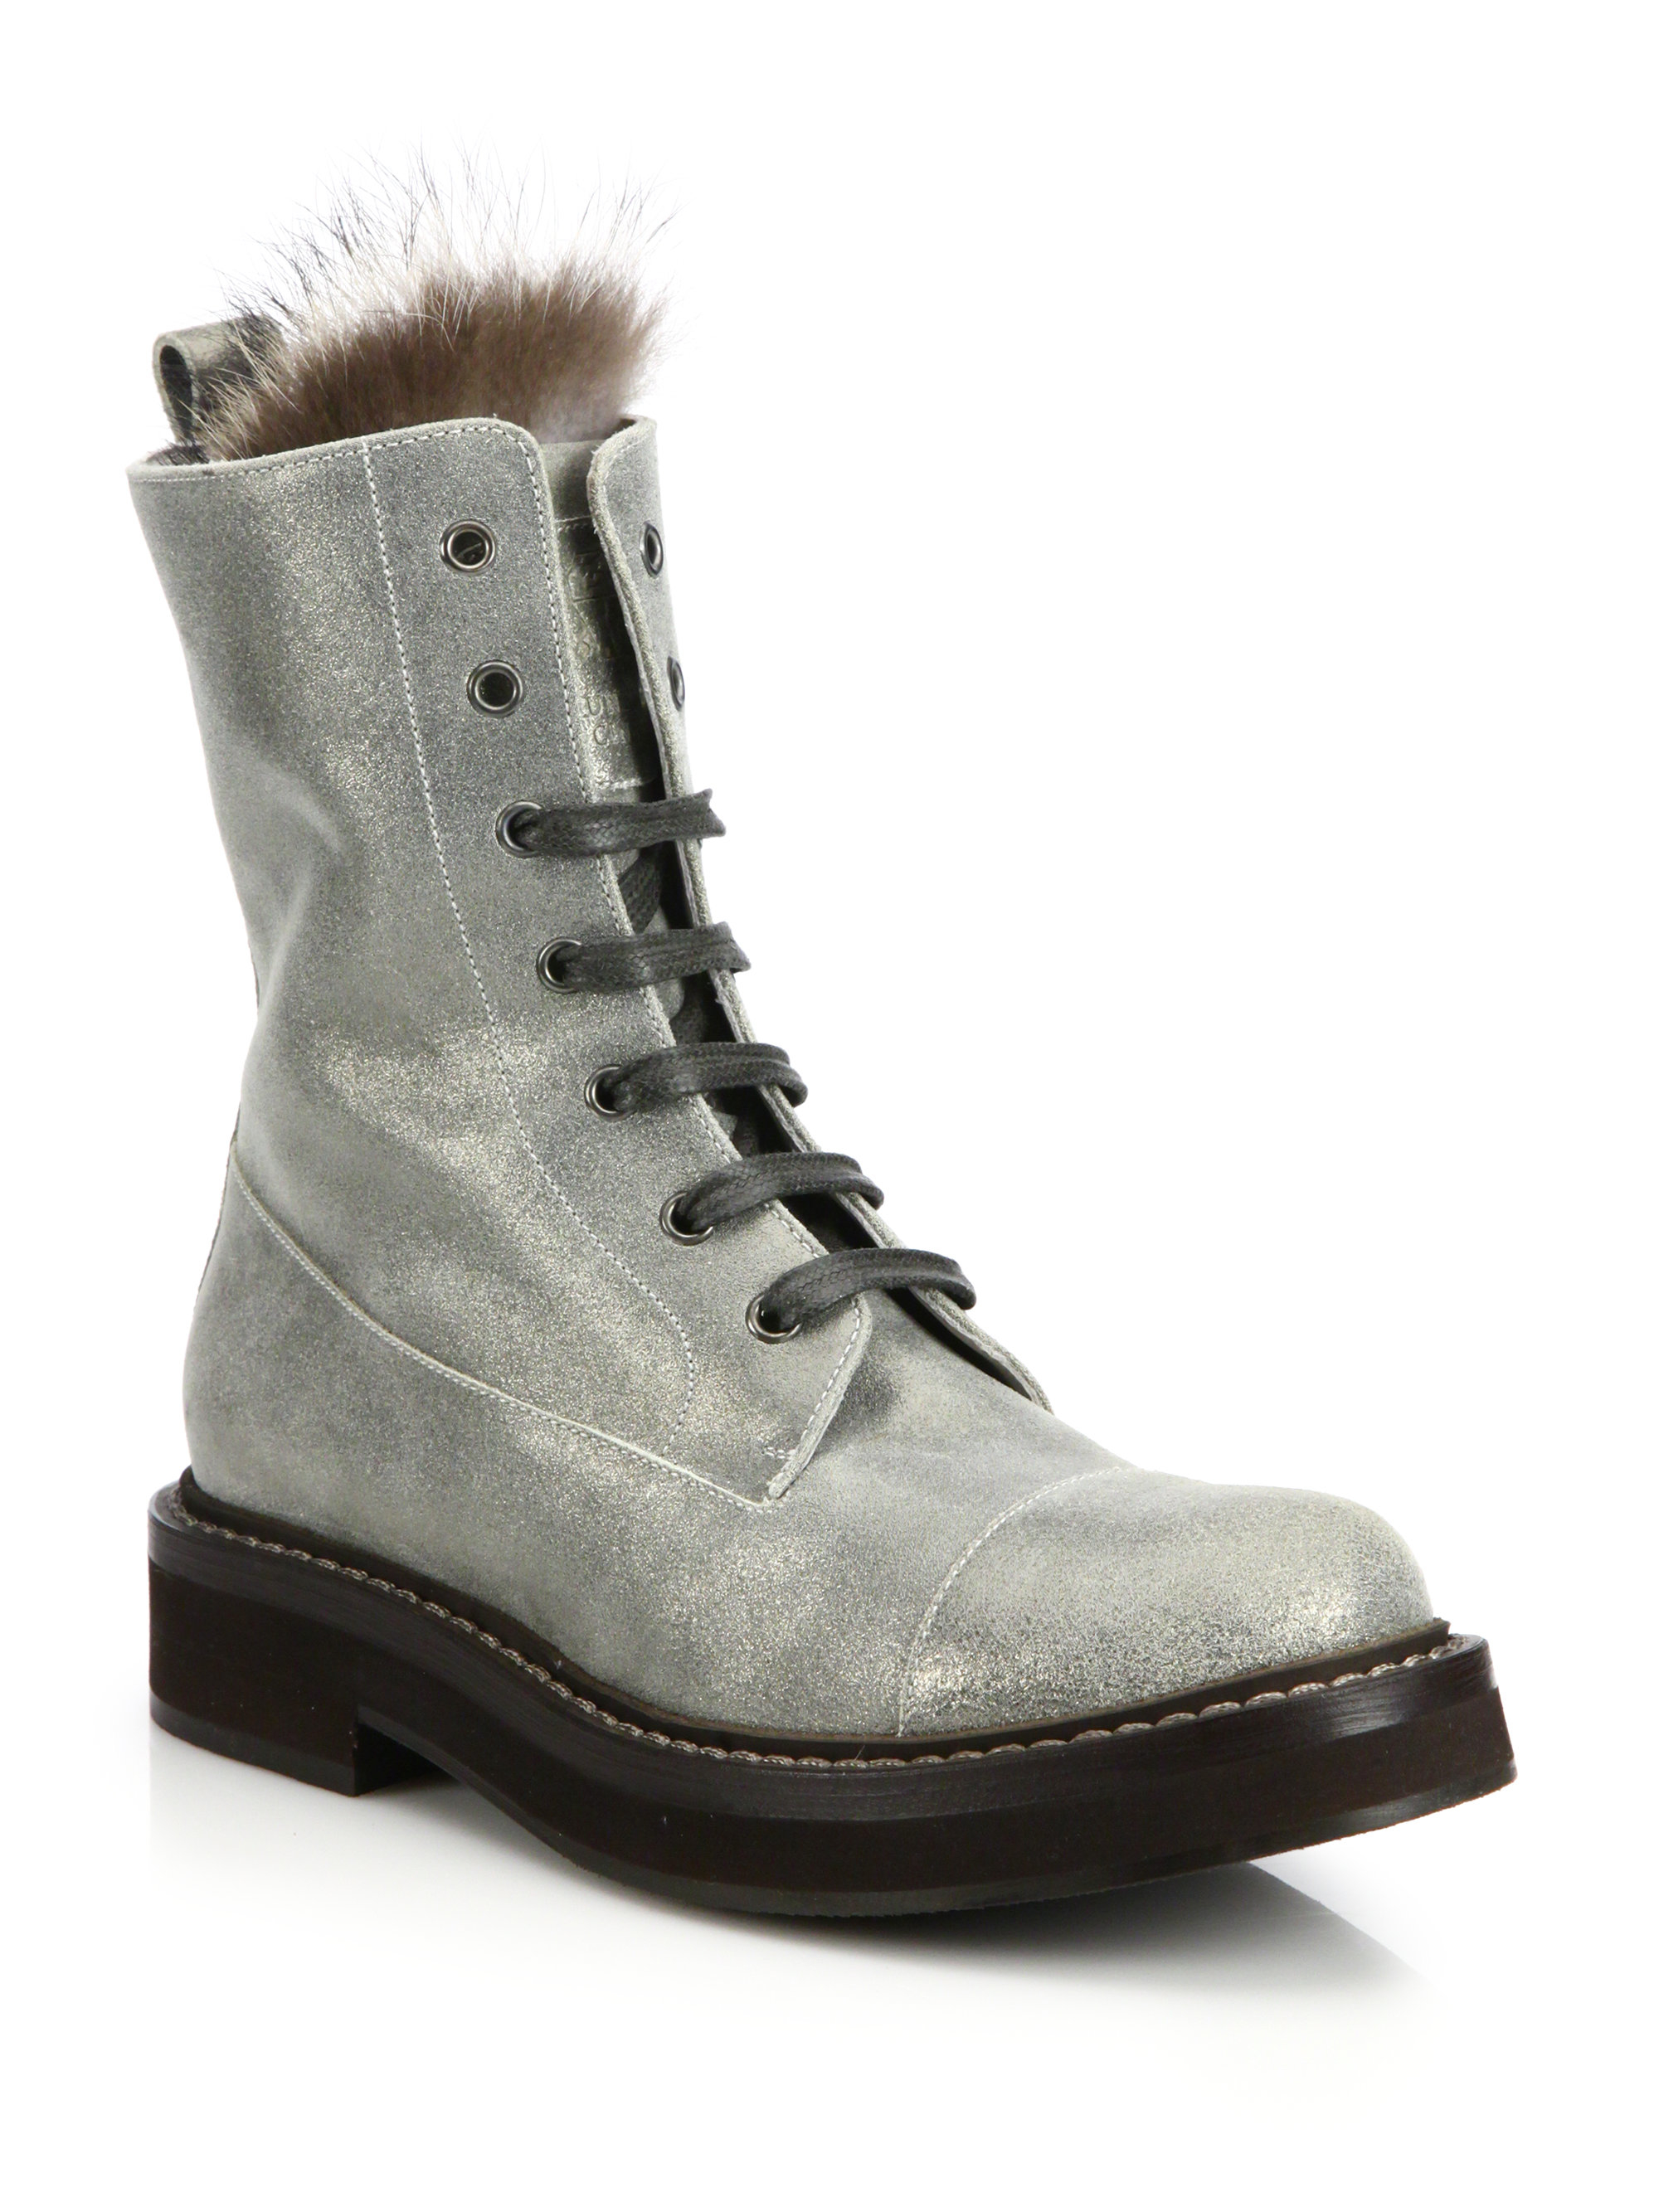 Brunello Cucinelli Metallic Fur-Trimmed Boots w/ Tags cheap sale new countdown package for sale clearance visit new buy cheap sneakernews clearance sale cok5ezos